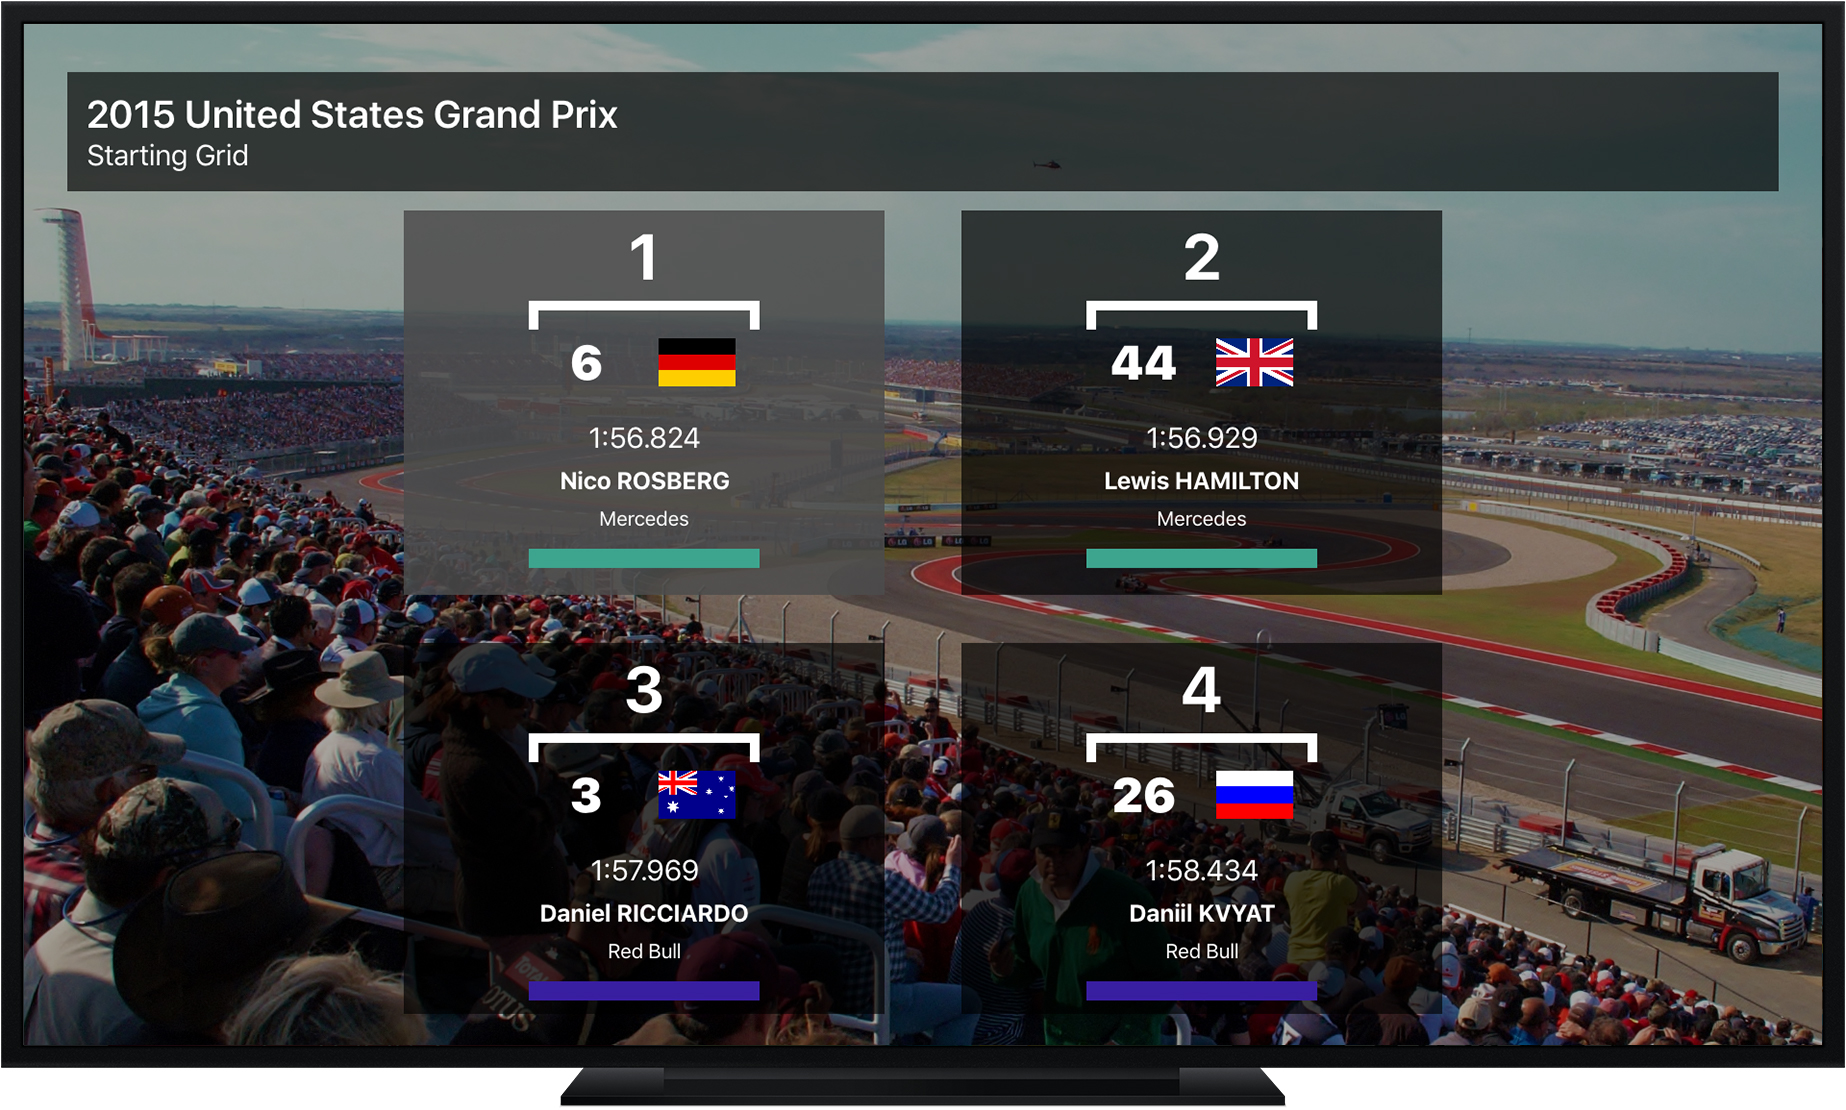 Starting Grid - Grand Prix Stats